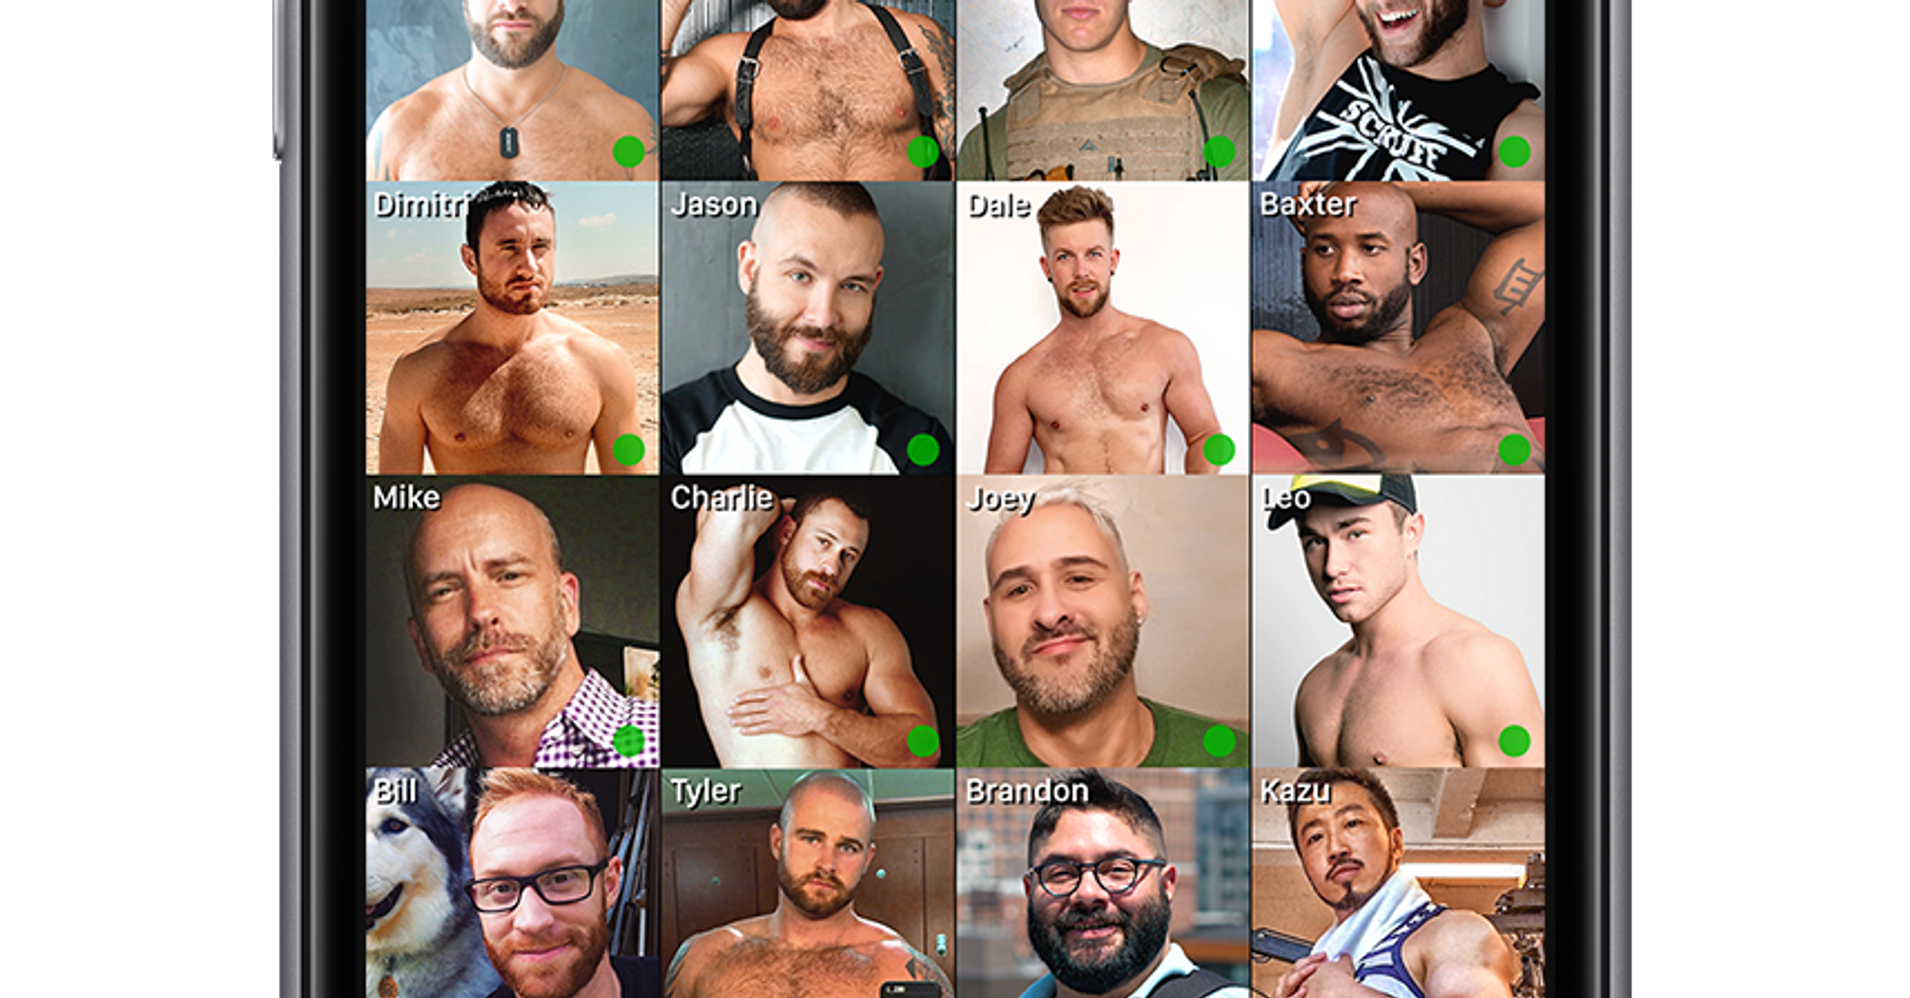 Notes From The Hook-Up Apps: 9 Guys Who Take All The 'Fun' Out Of Them |  HuffPost